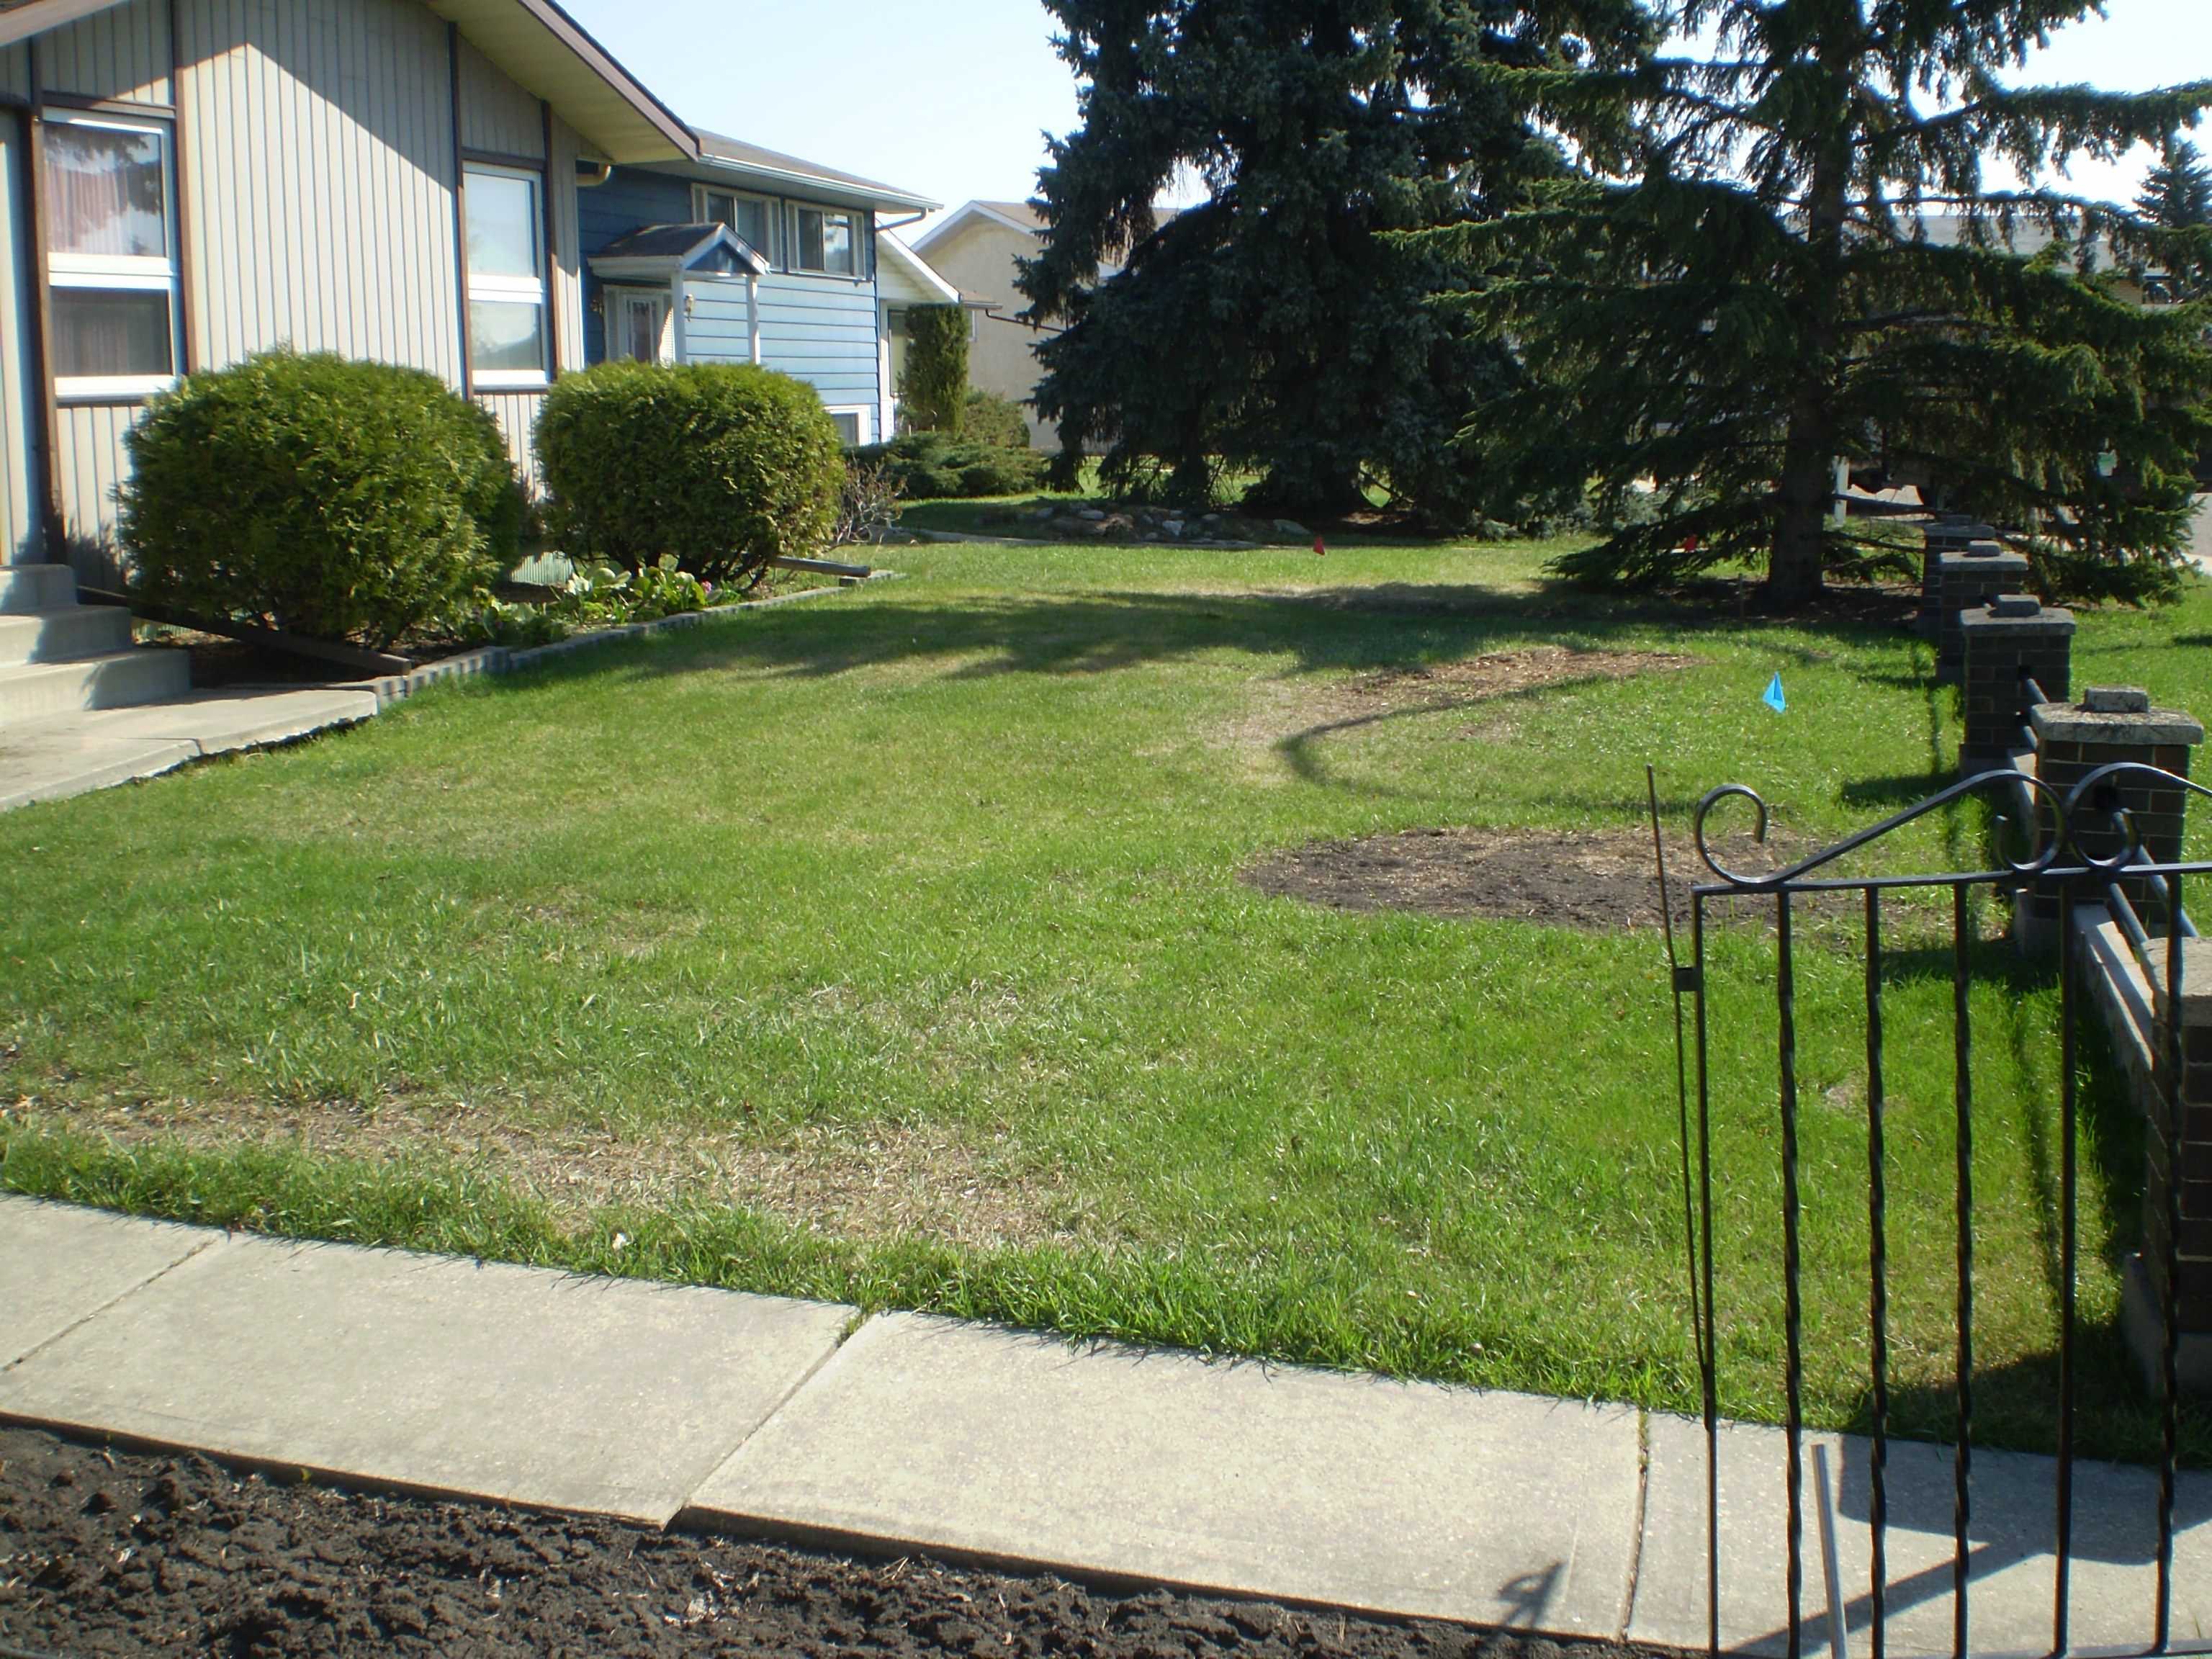 Small Front Yard Landscaping Before And After : Small front yard before midpoint after whitemud